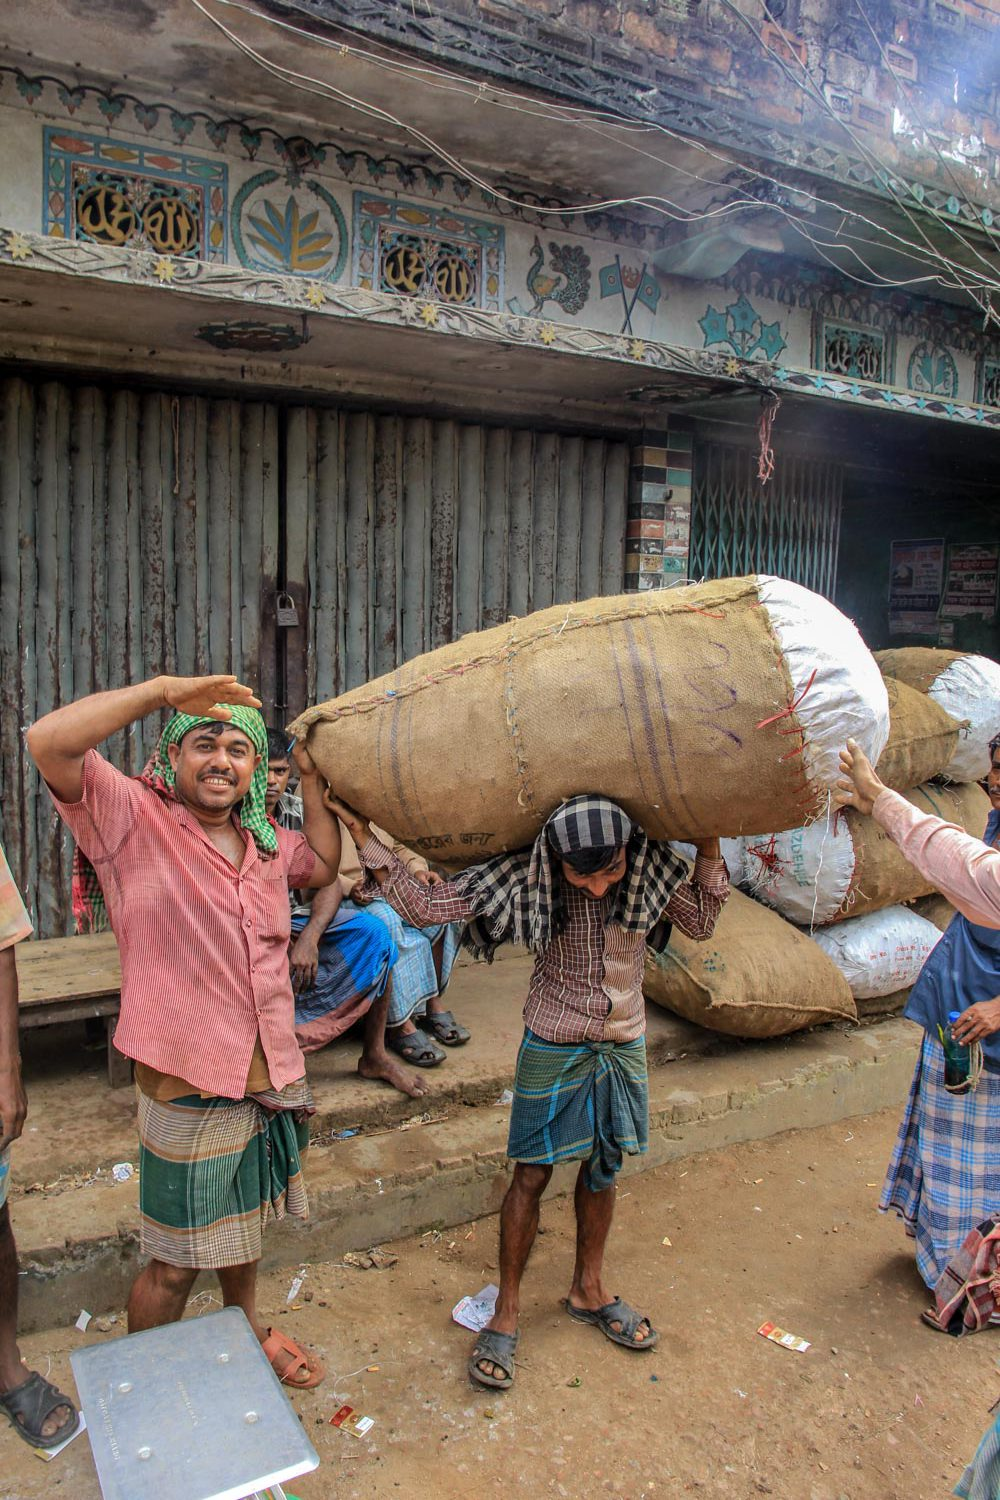 Local posing for a photo, the person on the left side told his friend to lift the heavy bag just for the photo in Bangladesh